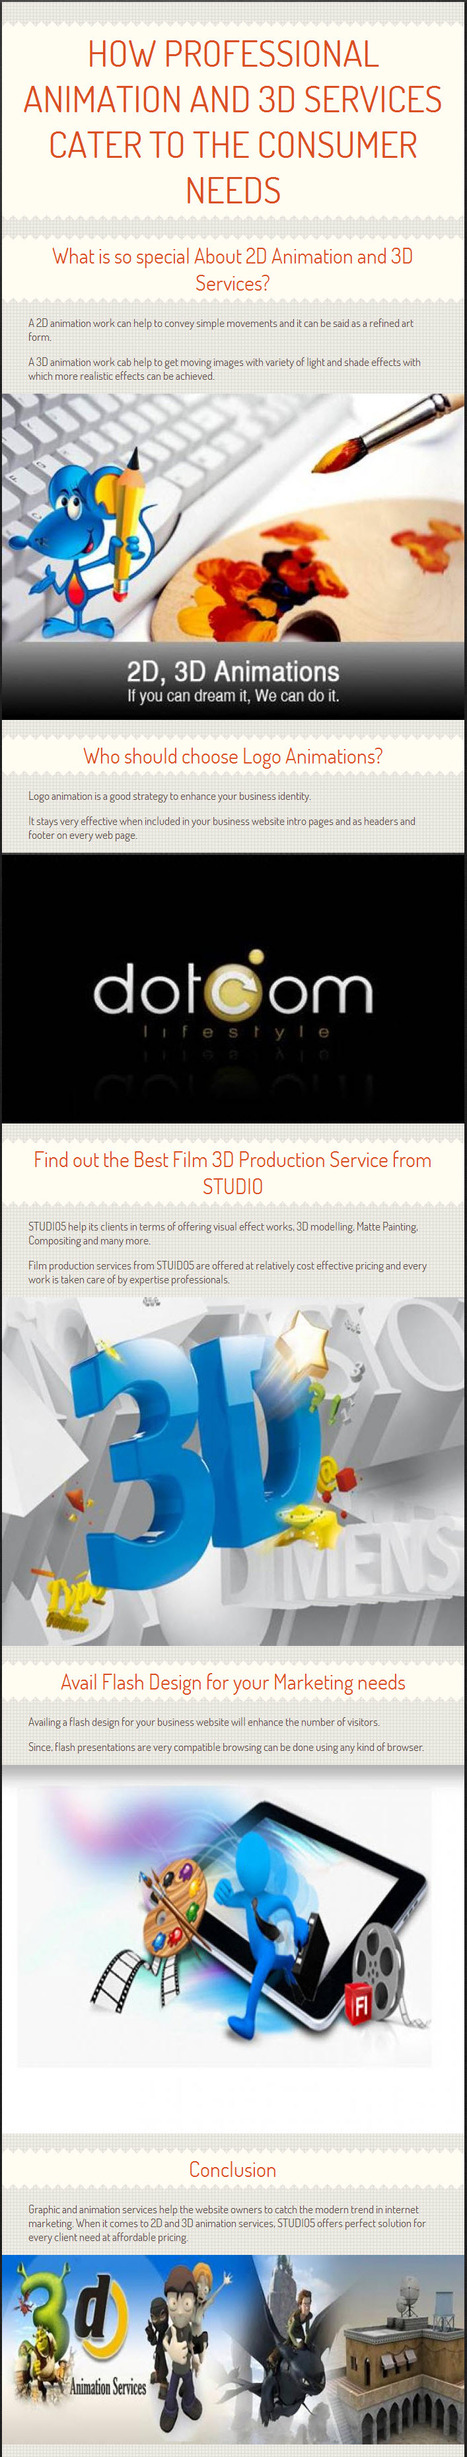 How Professional Animation and 3D Services cater to the Consumer Needs? | 3D Animation Services | Scoop.it